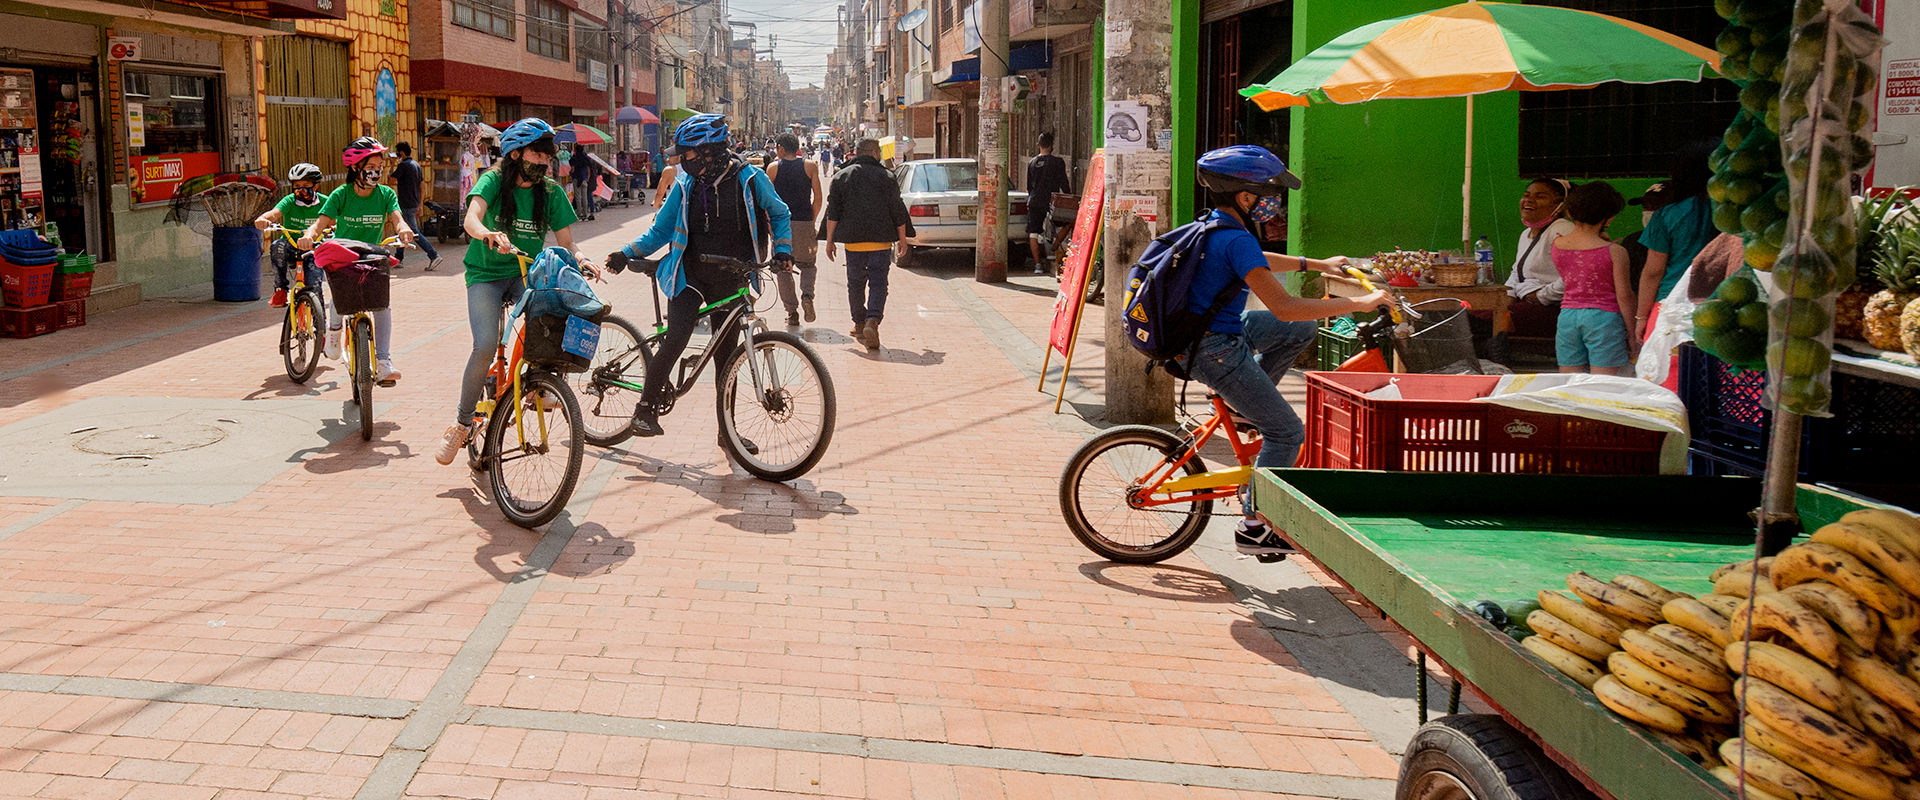 OPINION: We Can All Contribute to Safer, Greener and Healthier City Streets